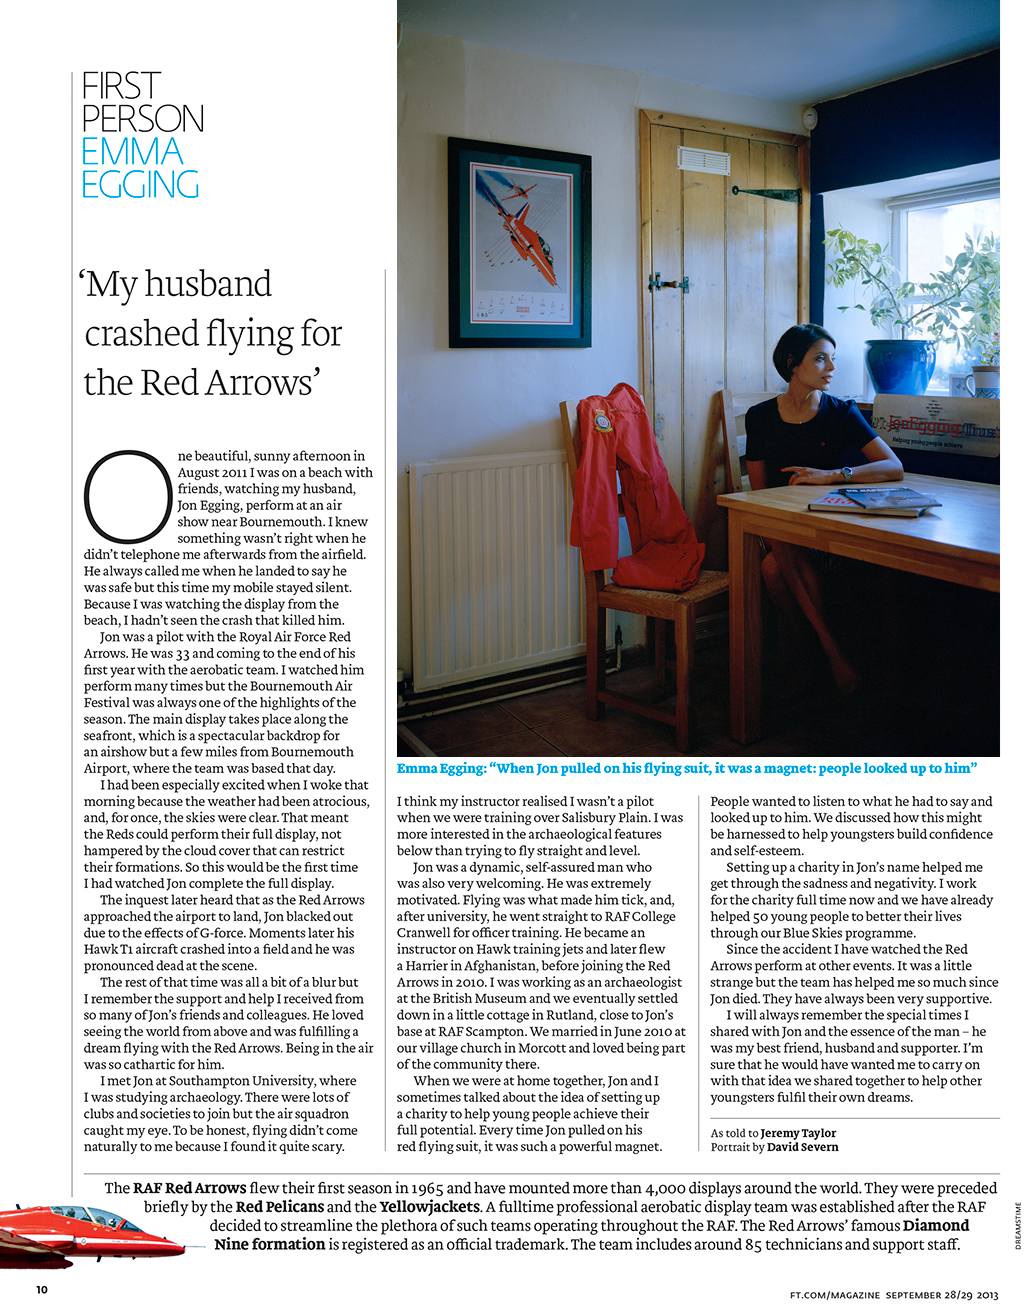 FT Weekend Magazine tearsheet: First Person Interview with Emma Egging